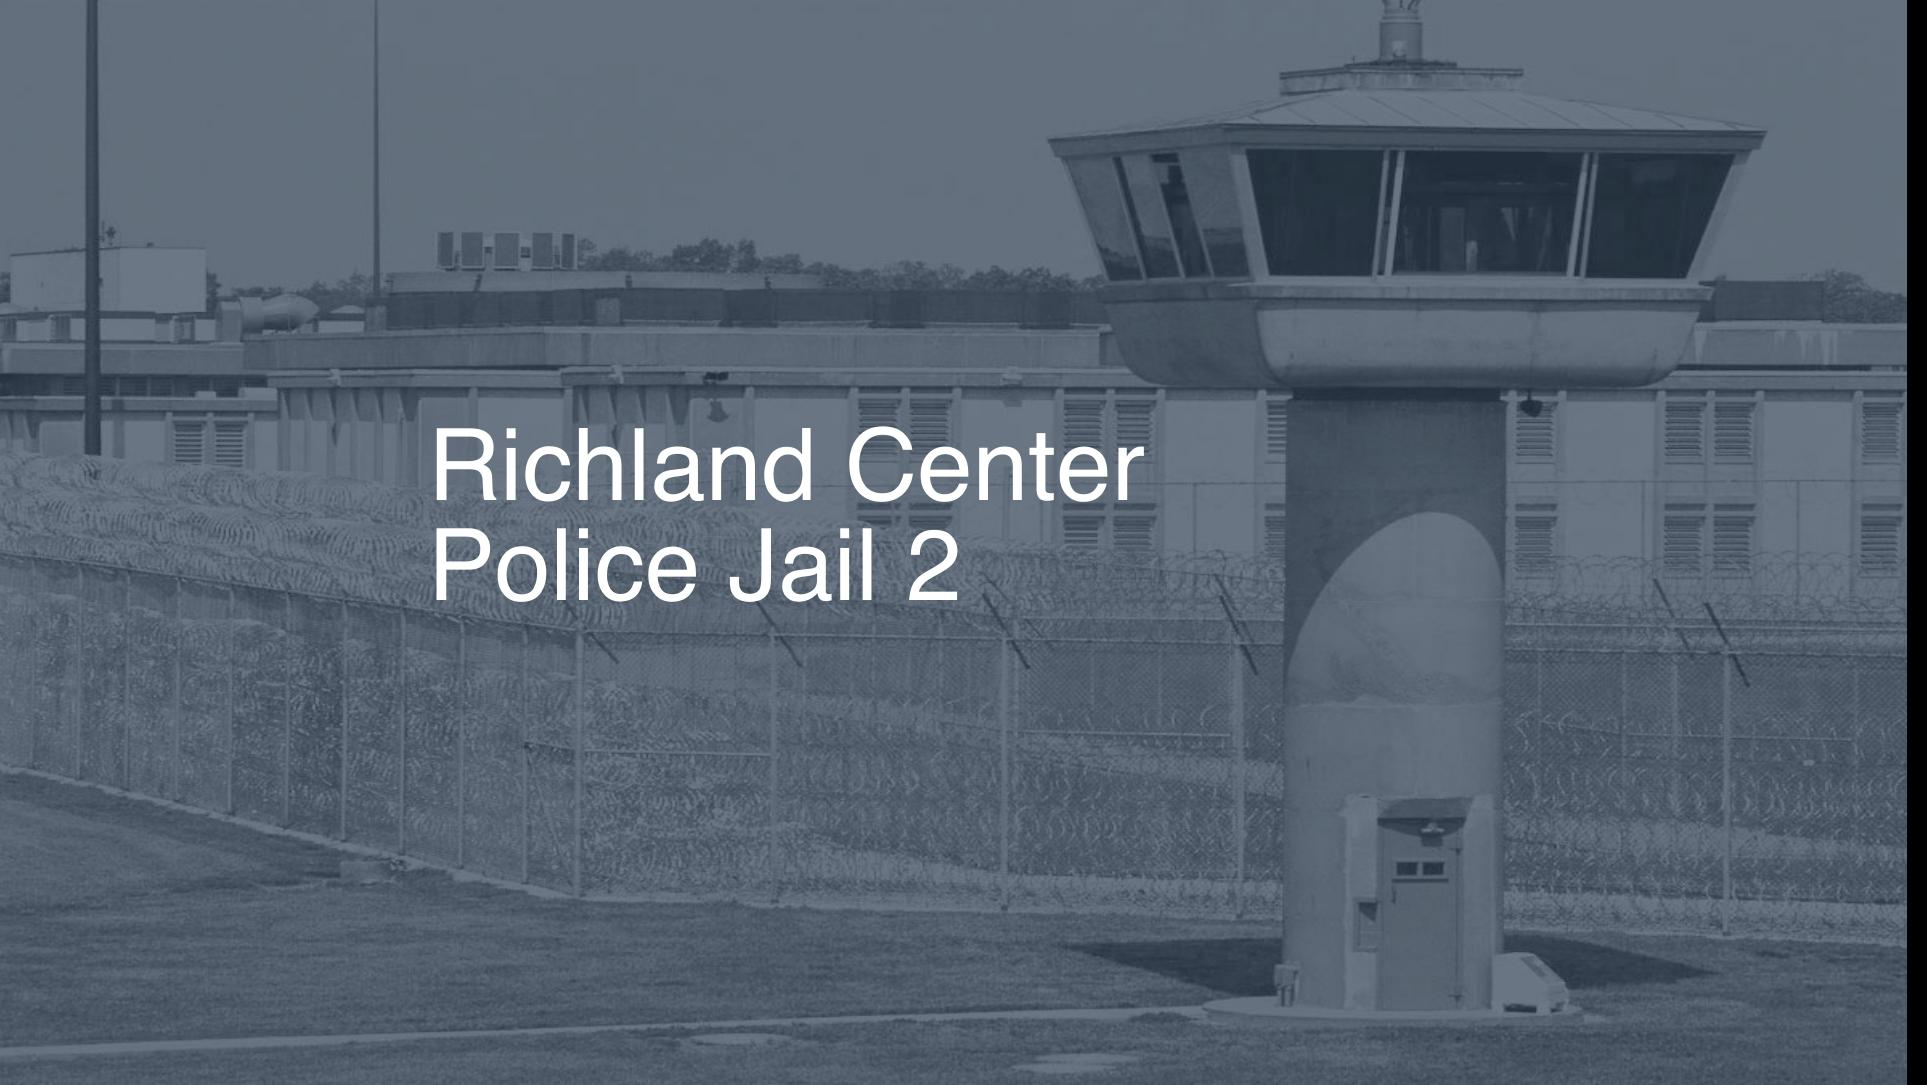 Richland Center Police Jail (2019) | Inmate Search